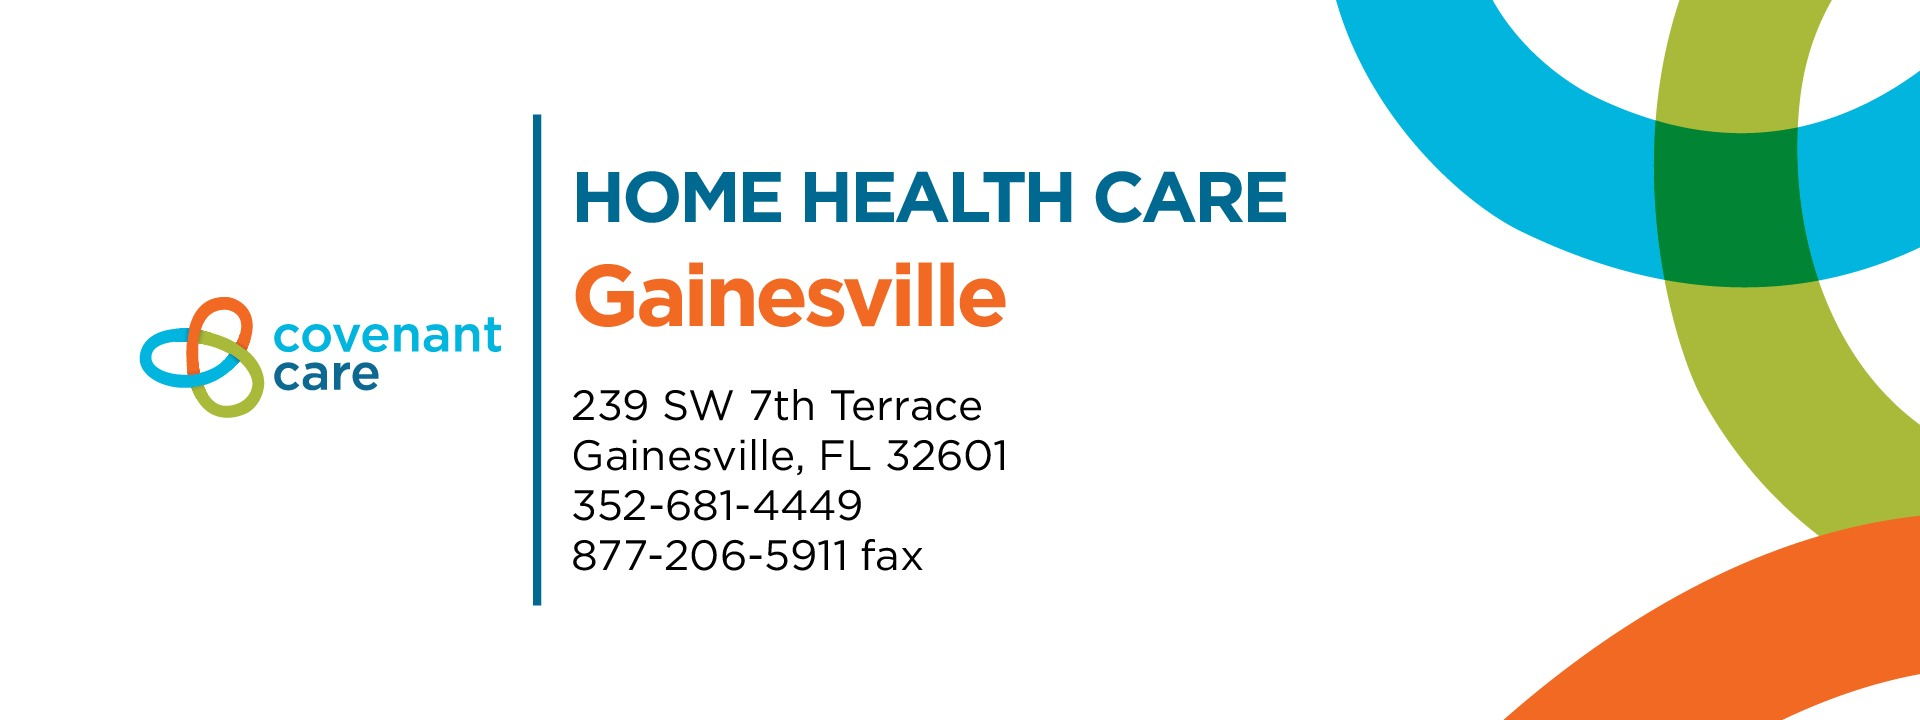 Covenant Care Home Health Care Gainesville address and phone number